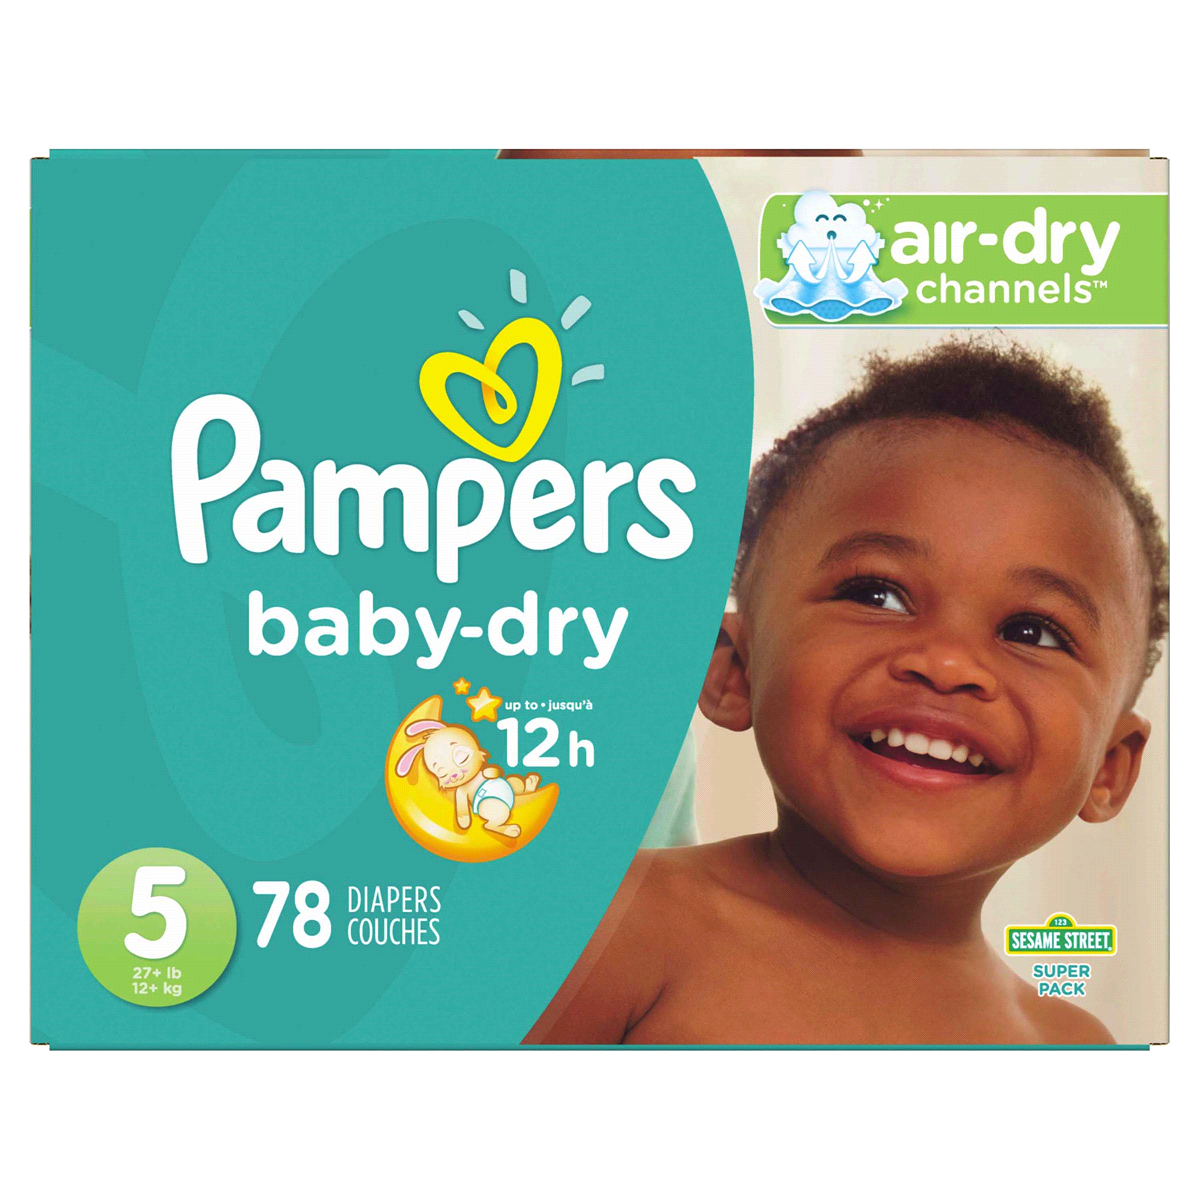 P&G Pampers